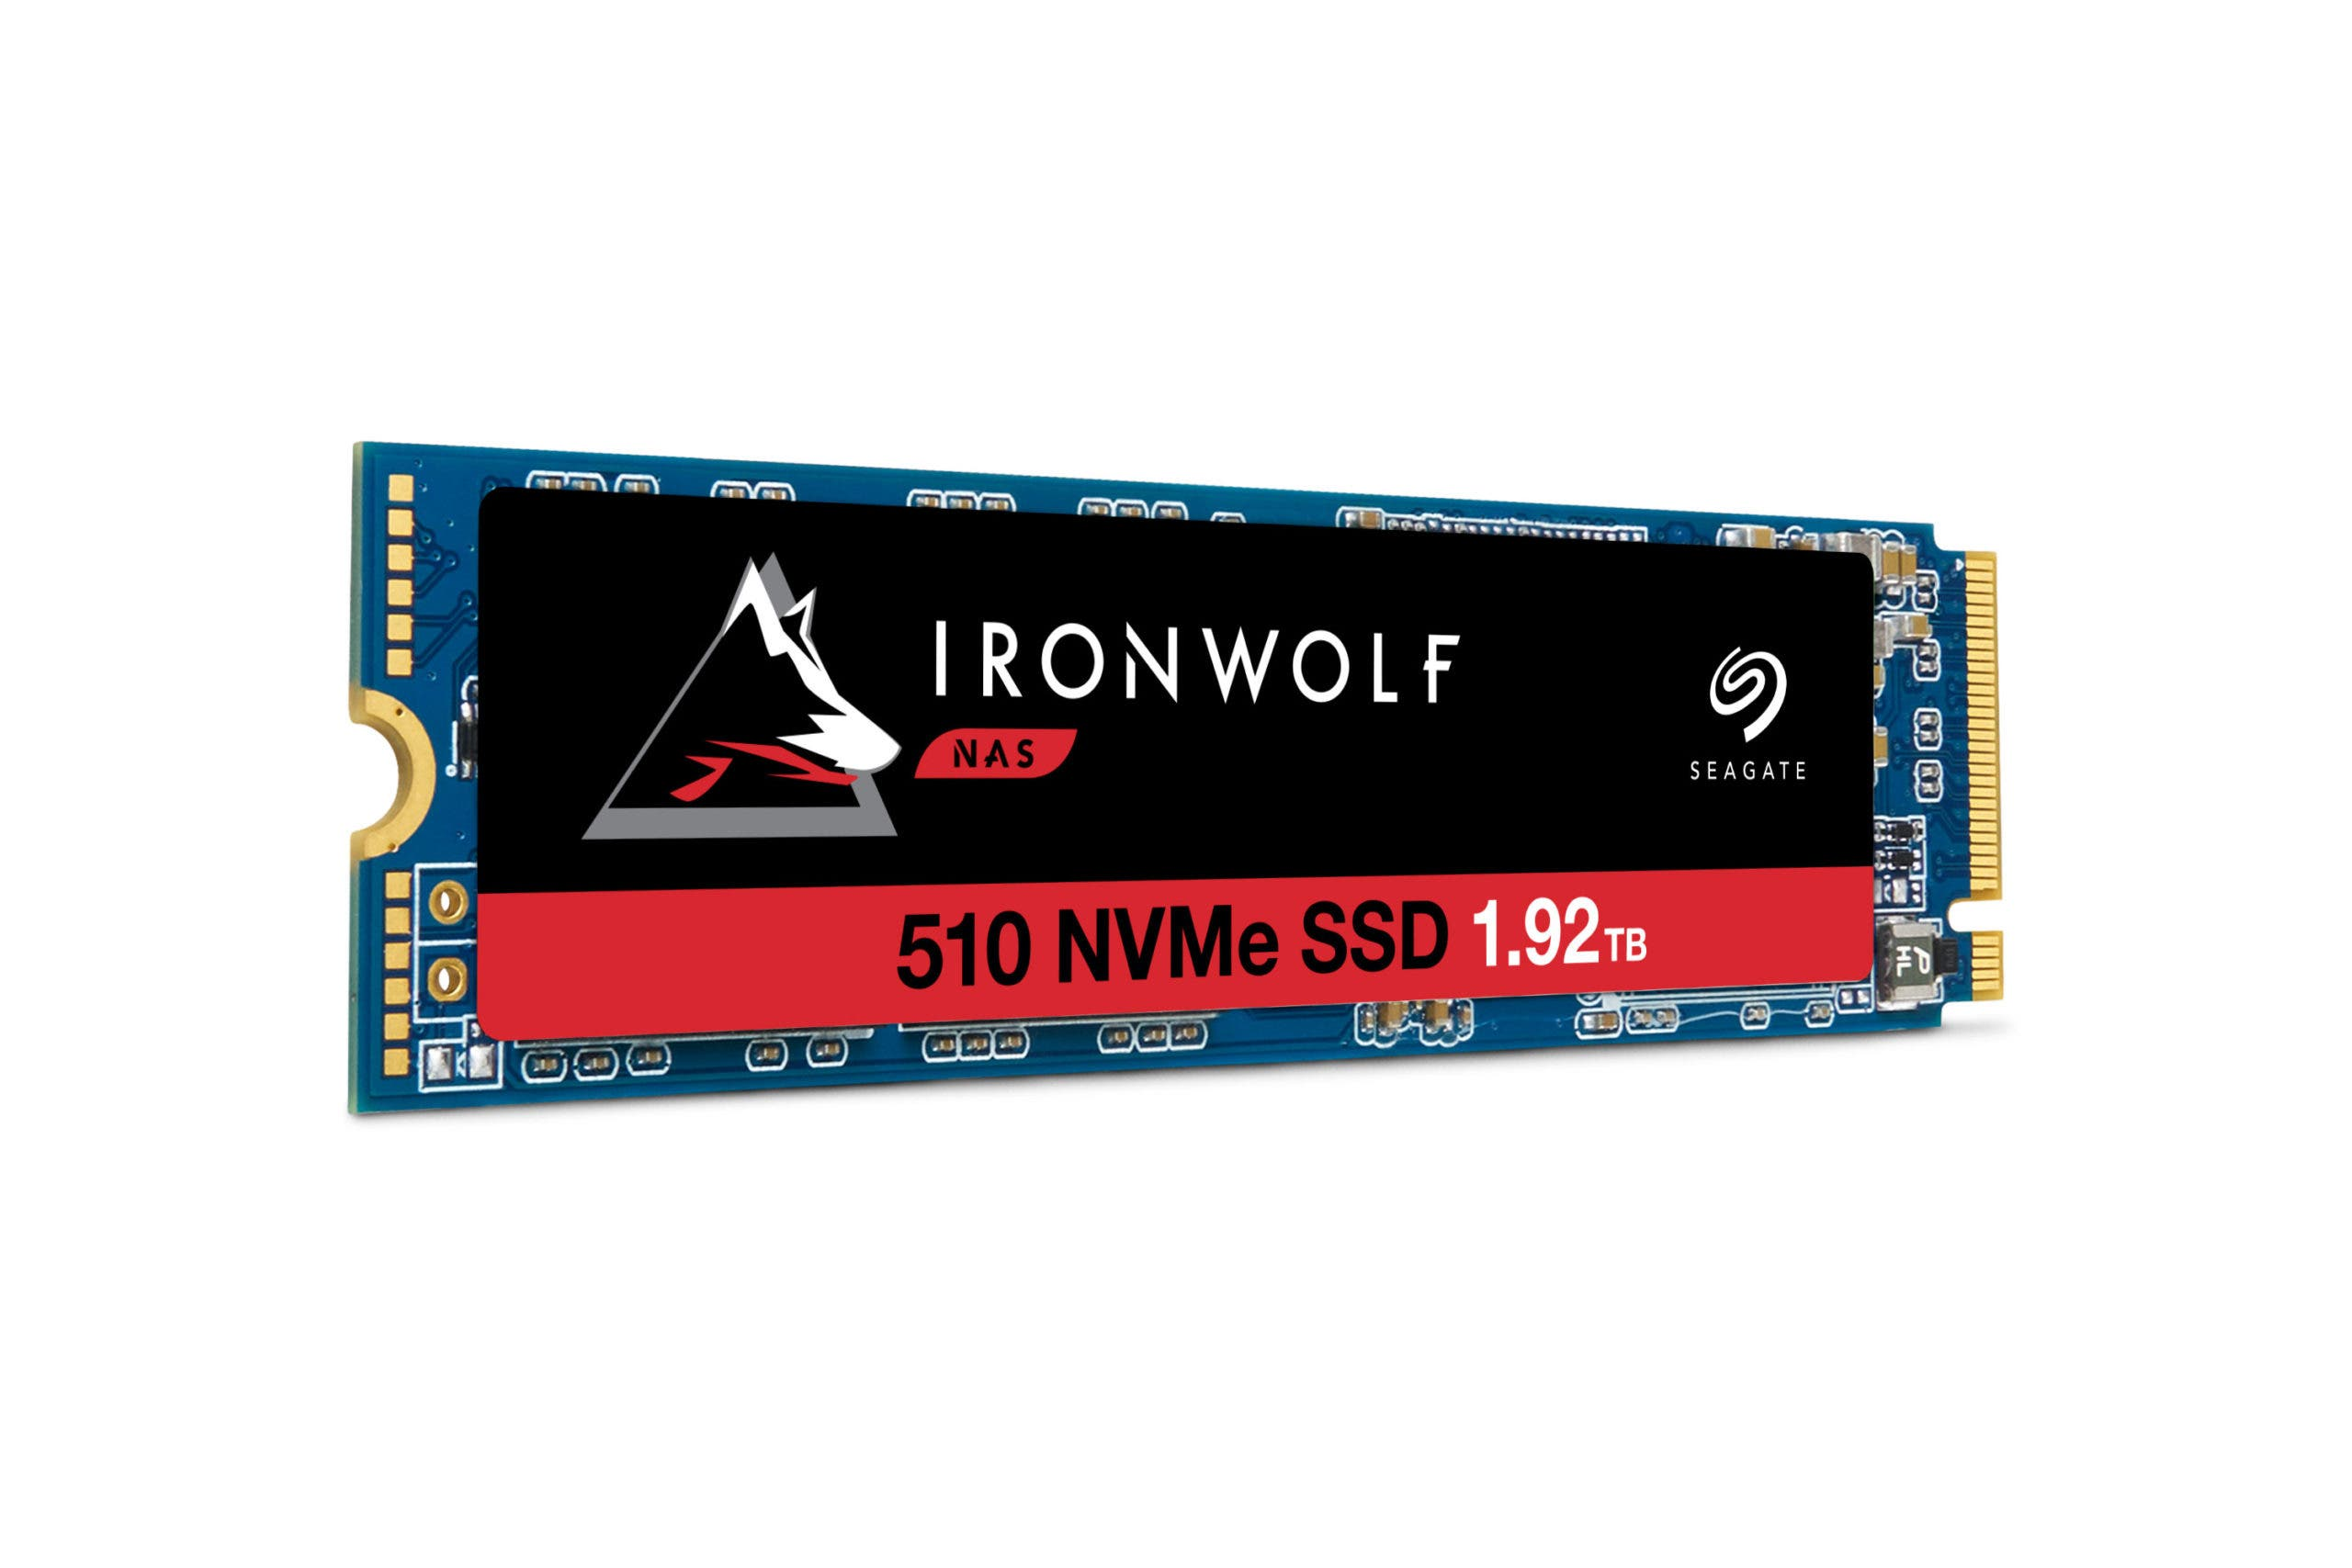 The New Seagate IronWolf 510 SSD Is for Creative Professionals